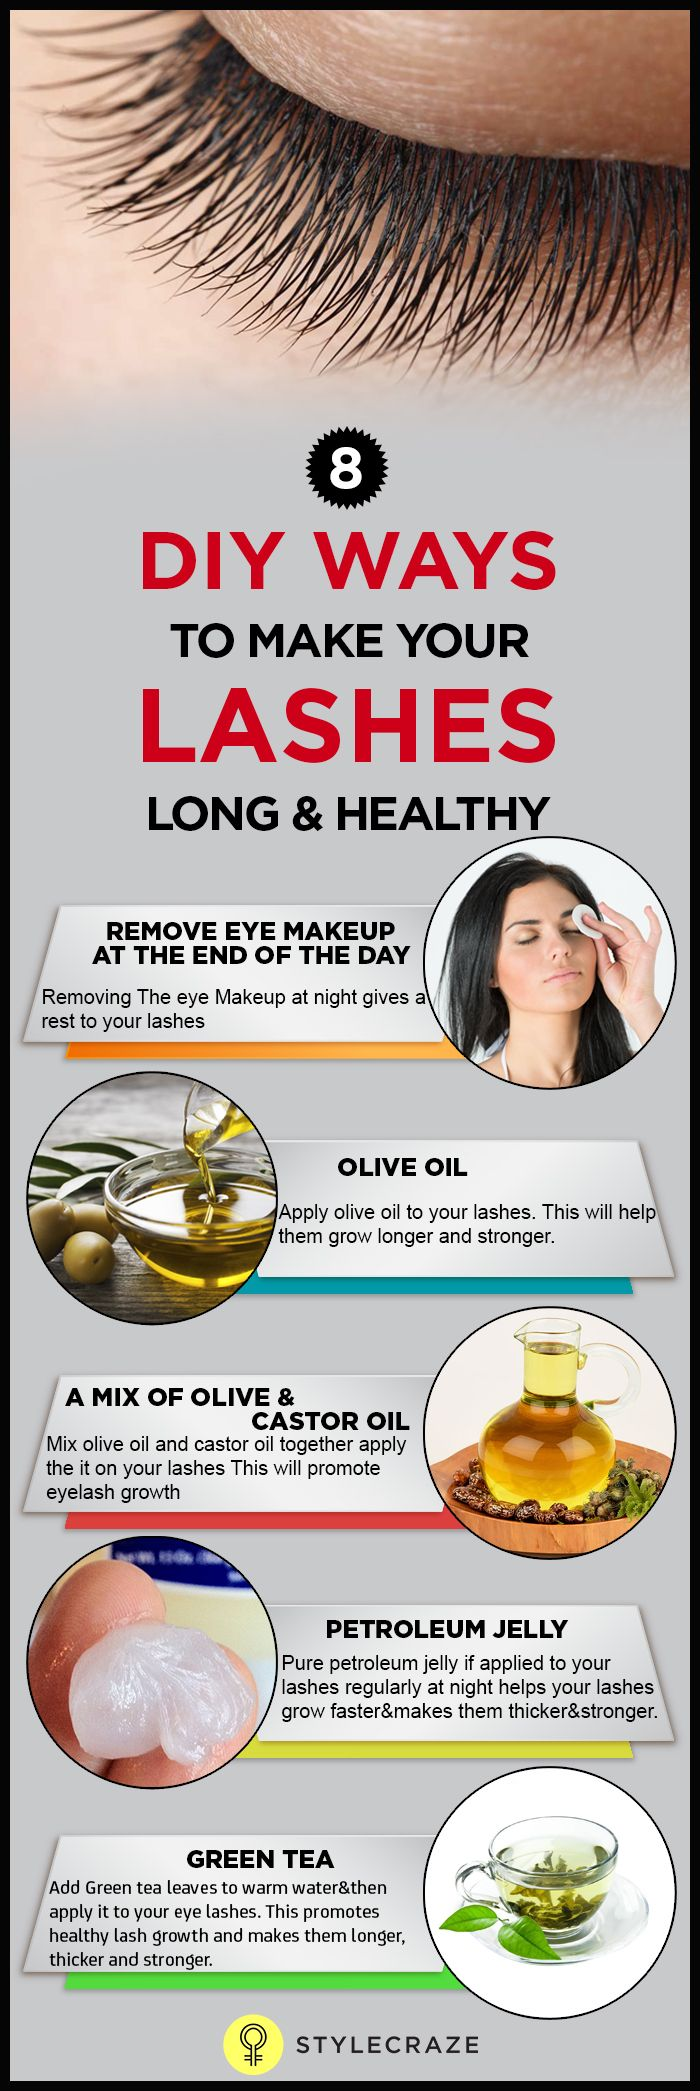 It is easy and you don't even need to work so much as you do for hair. Whenever, you are trying to embark on a lash care routine, remember that the results will not be visible till the next cycle of the eyelashes. So, you will have to wait patiently for two months before you see any difference in your eye lashes.